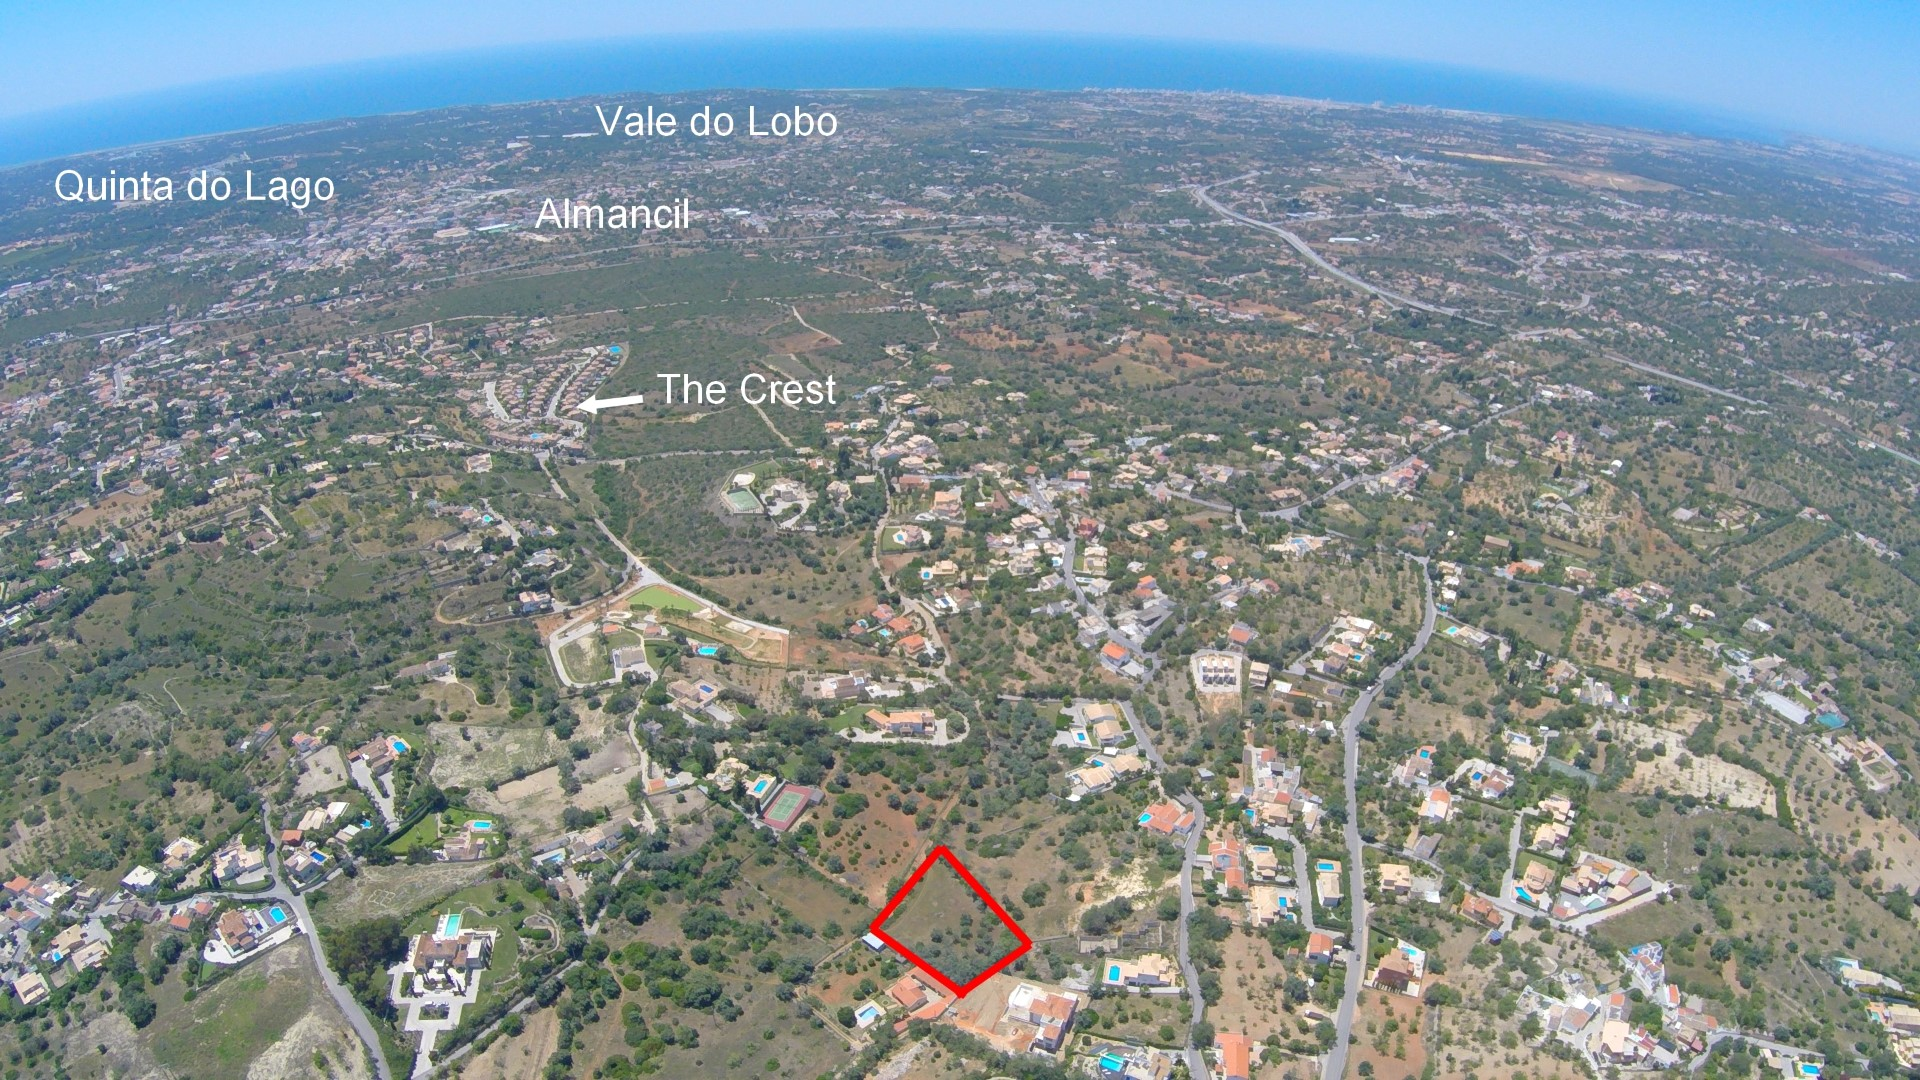 Plot Approved to Build Luxury Villa in Vale Formoso Area – Almancil